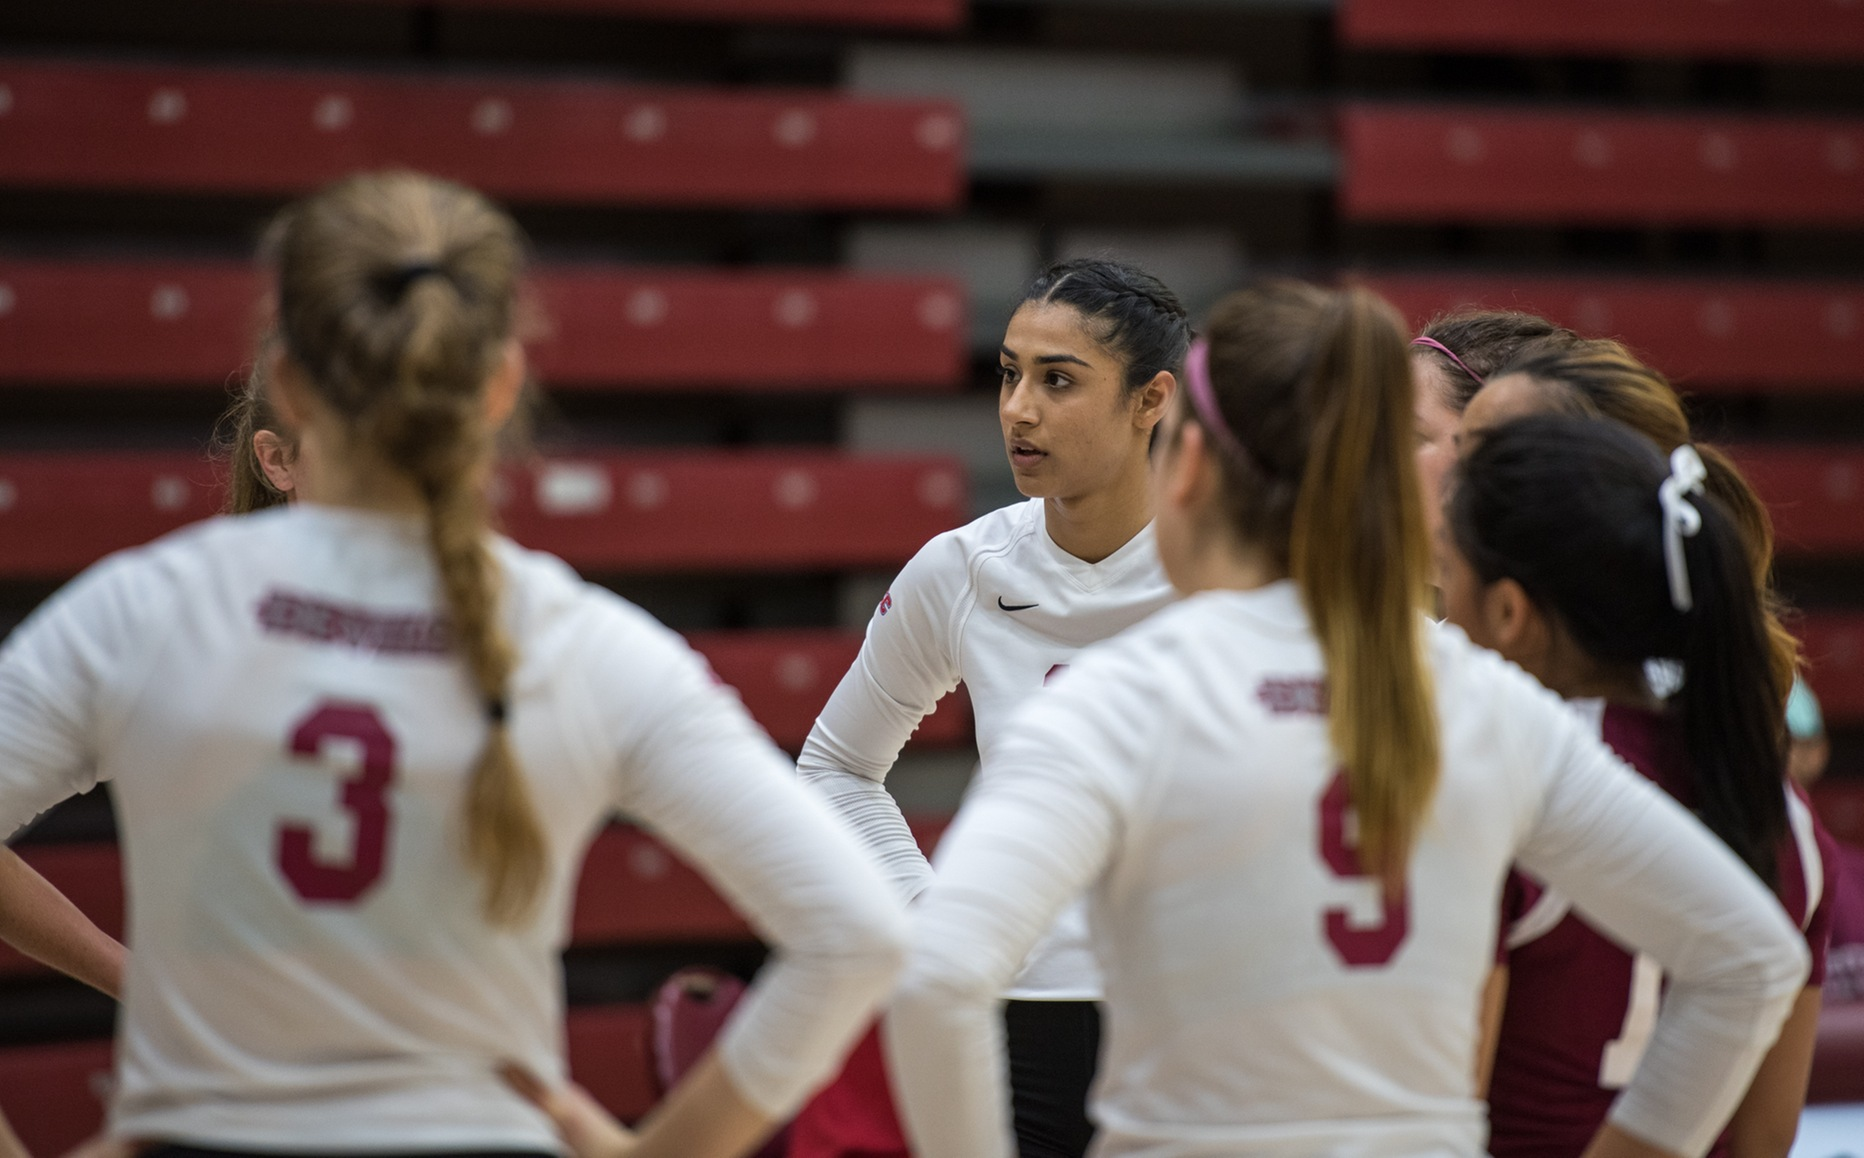 Women's Volleyball Closes 2017 Campaign on Friday Night; Sangu Puts Stamp on Impressive Career